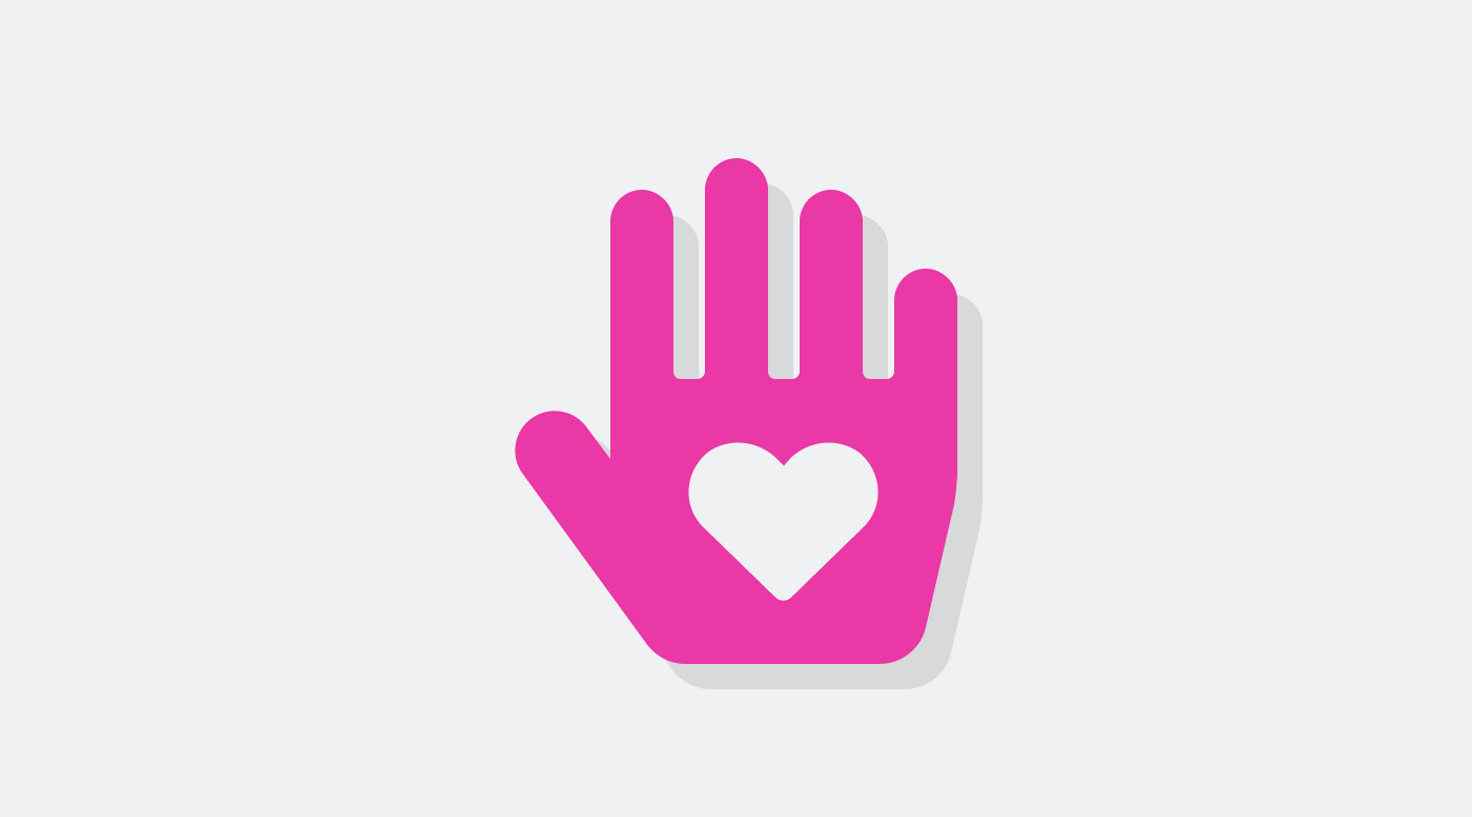 Icon of a hand with a heart in its palm